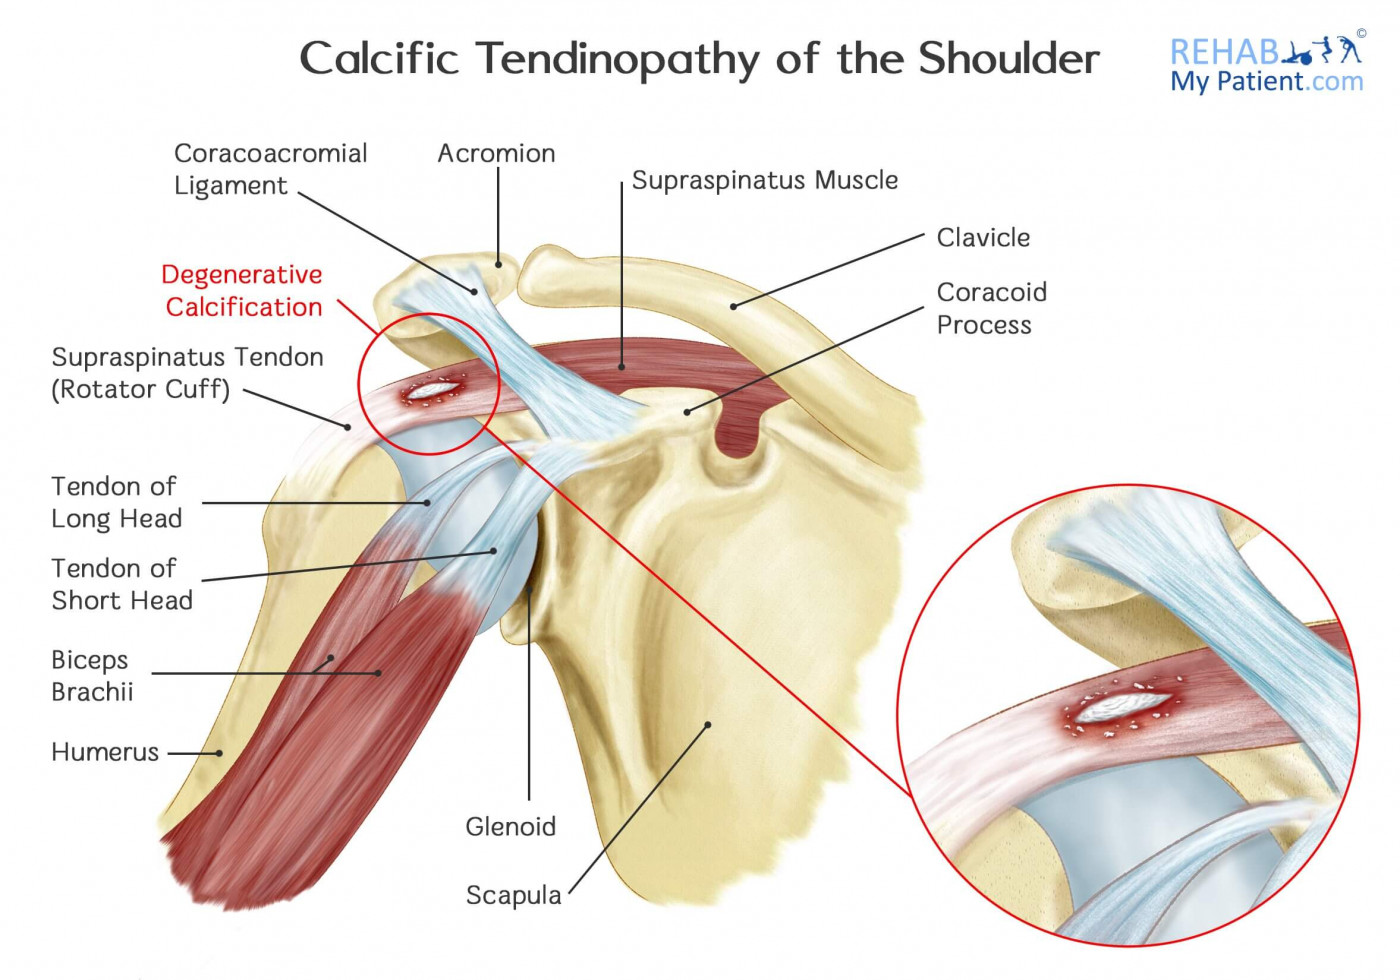 Calcific Tendinopathy of the Shoulder | Rehab My Patient